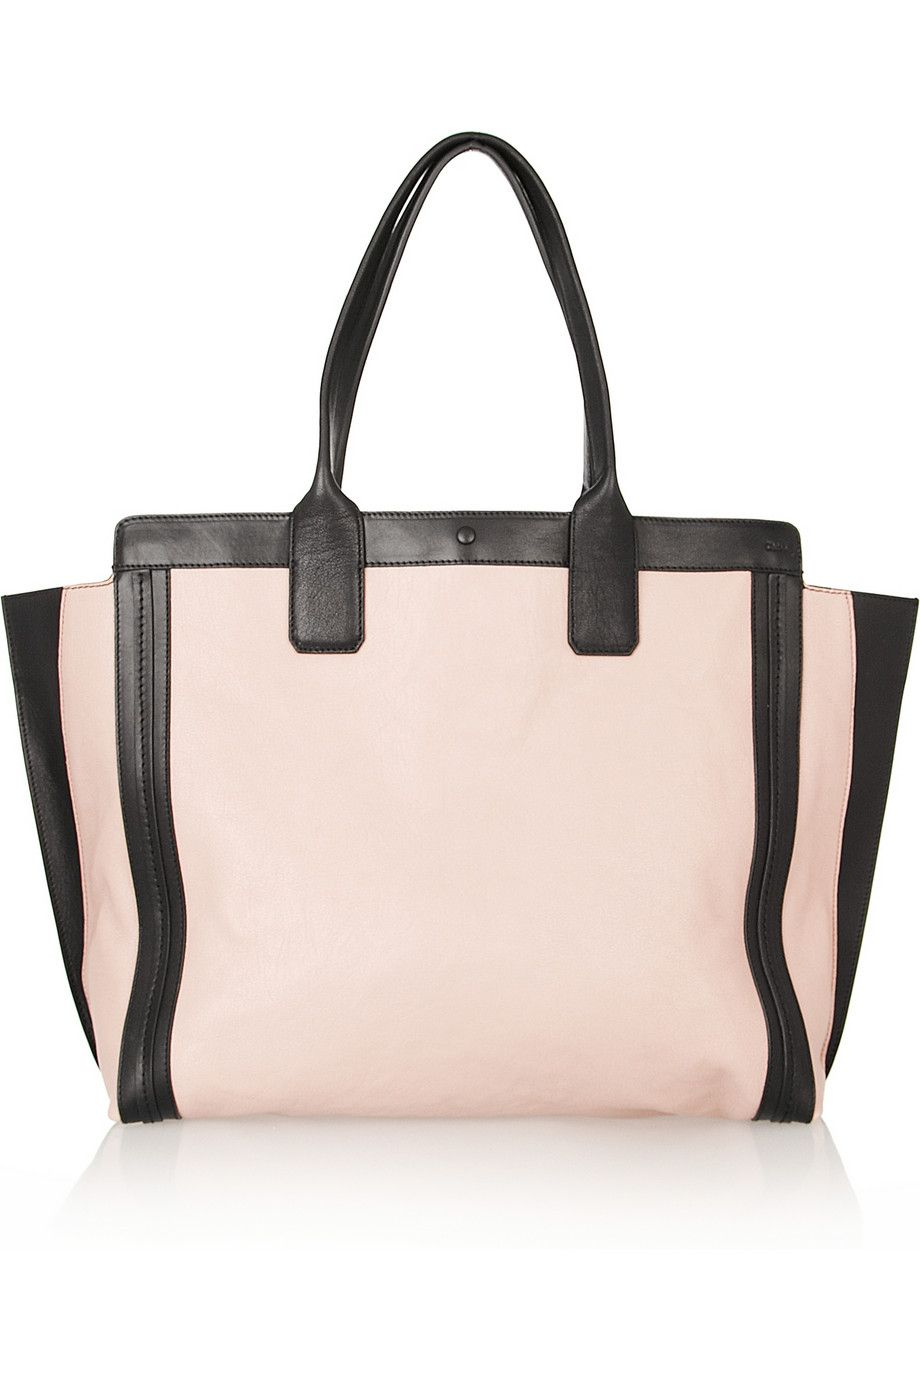 Chloé | The Alison leather shopper | NET-A-PORTER.COM